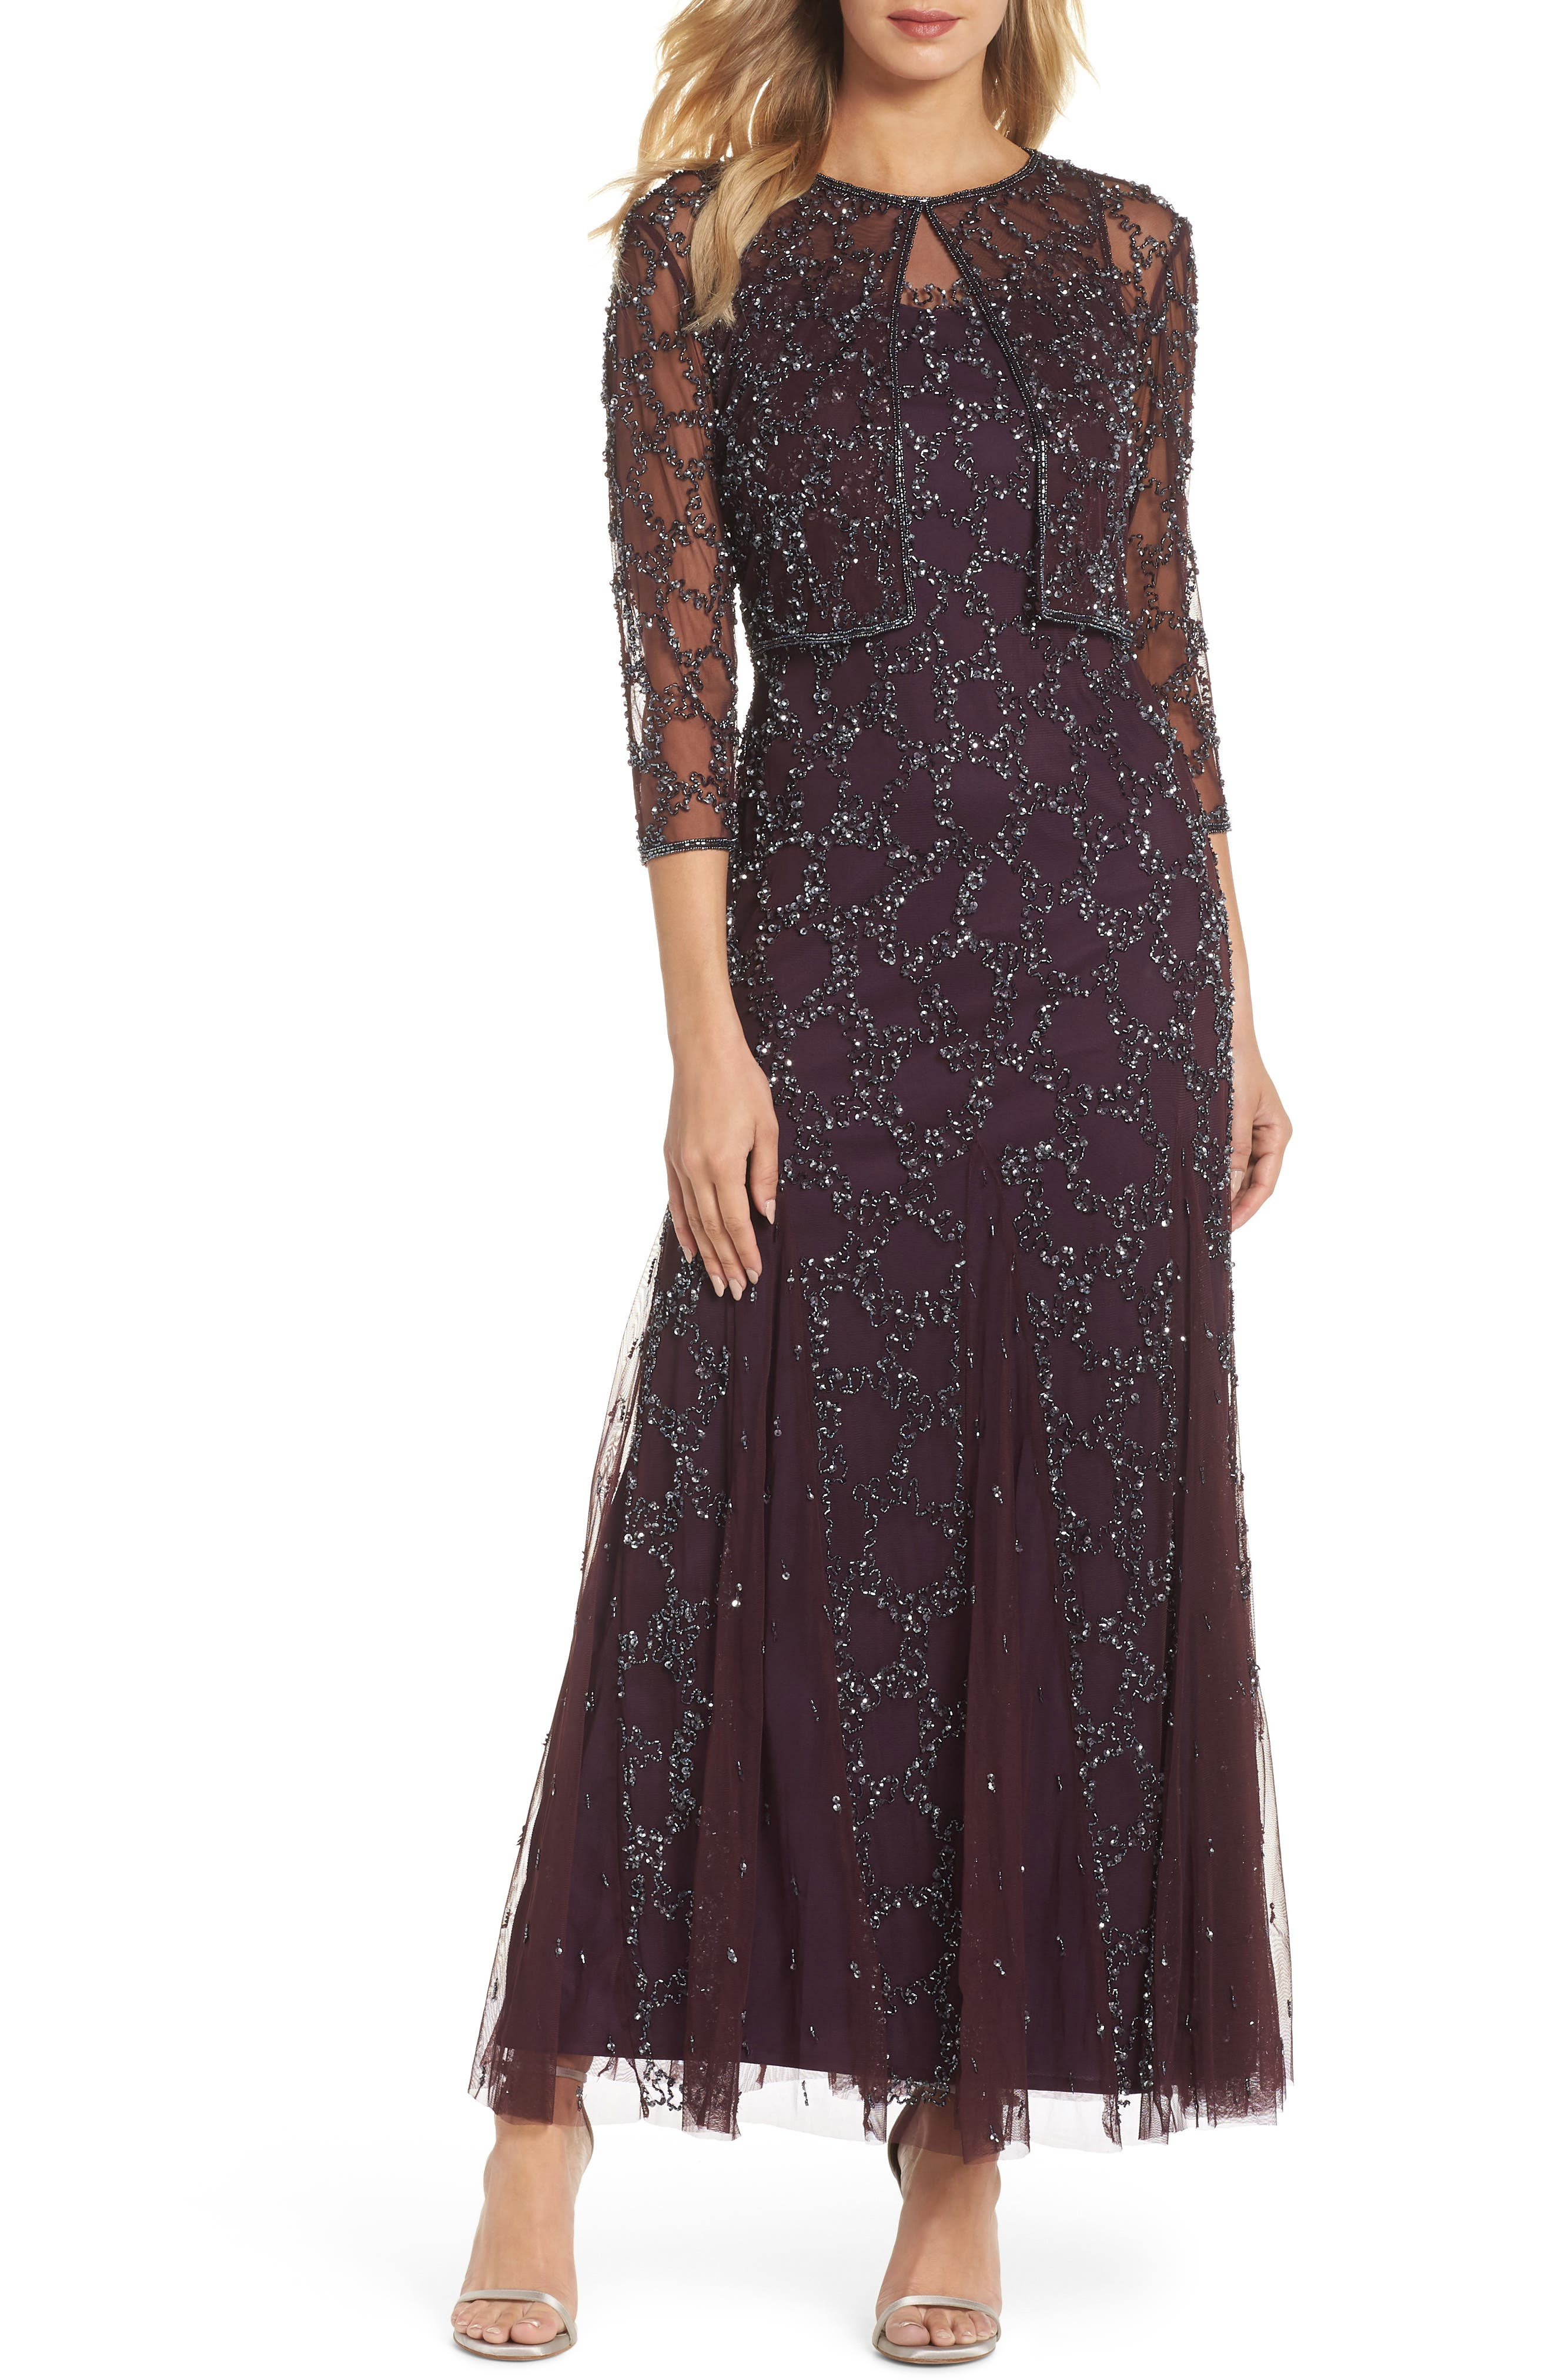 1920s Evening Dresses & Formal Gowns Womens Pisarro Nights Sequin Mesh Gown With Jacket Size 2 - Purple $238.00 AT vintagedancer.com